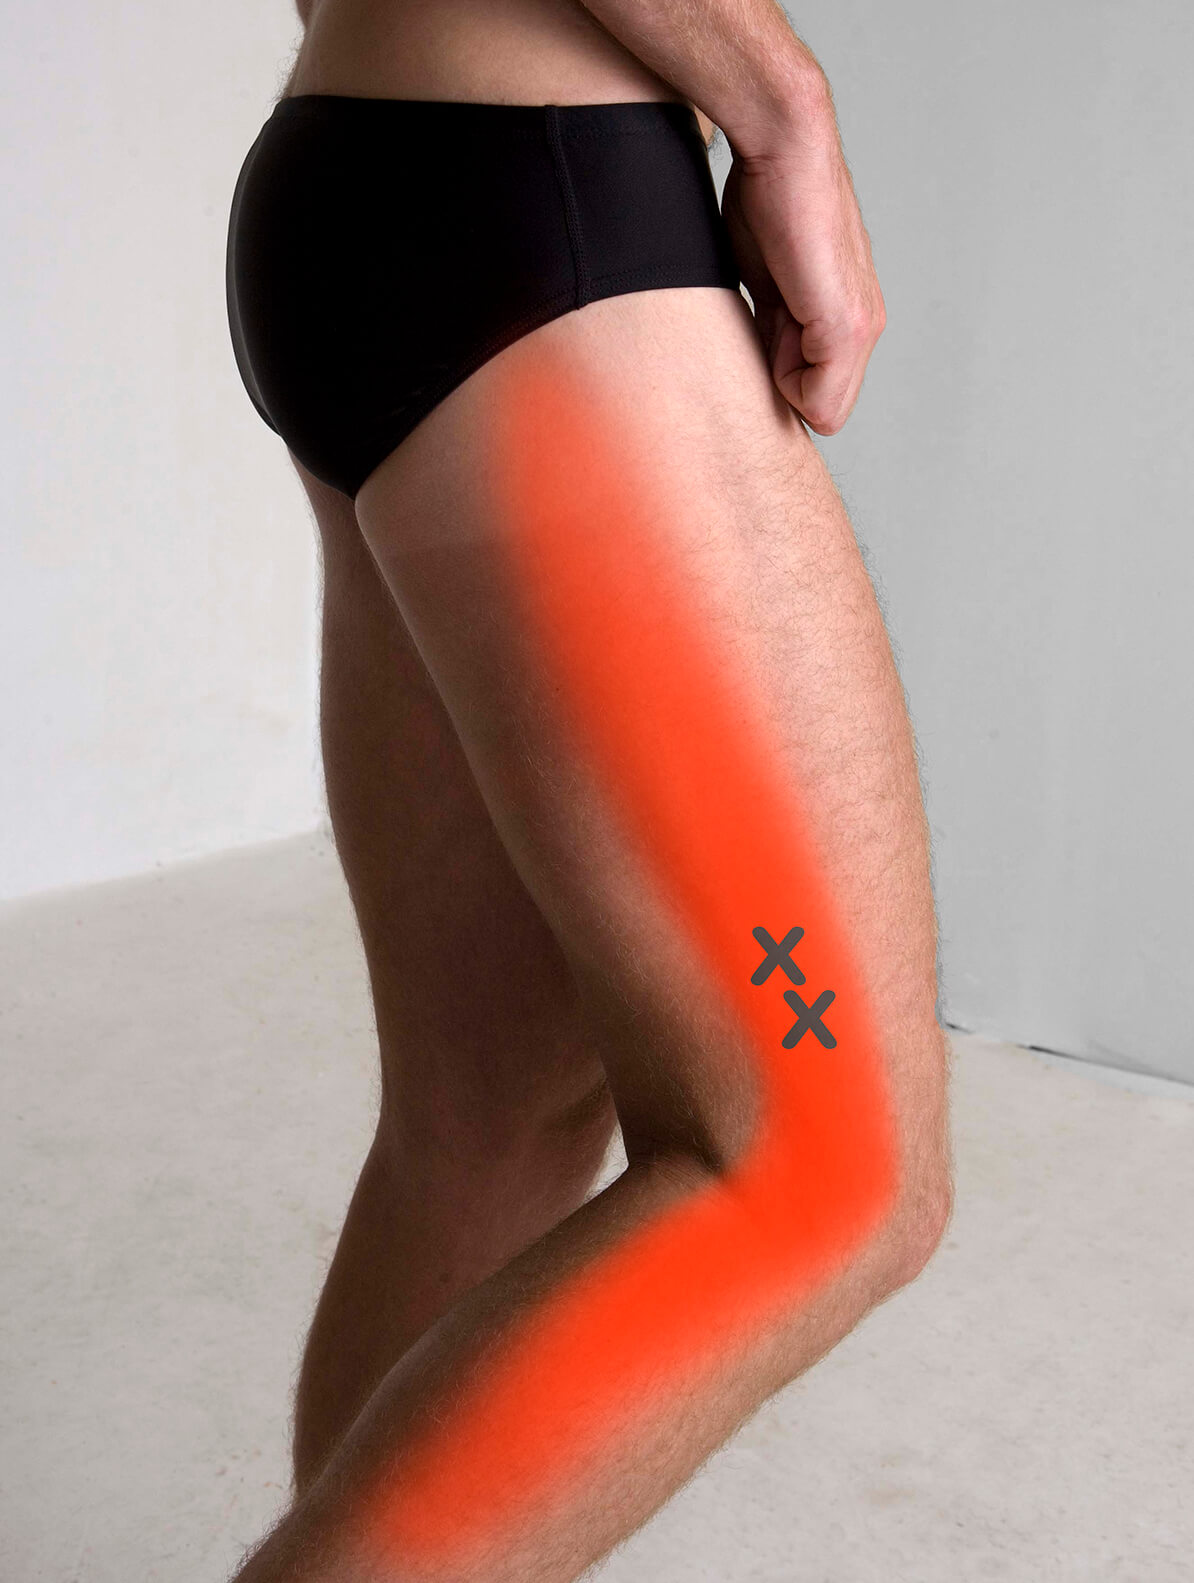 Vastus Lateralis Pain Pattern